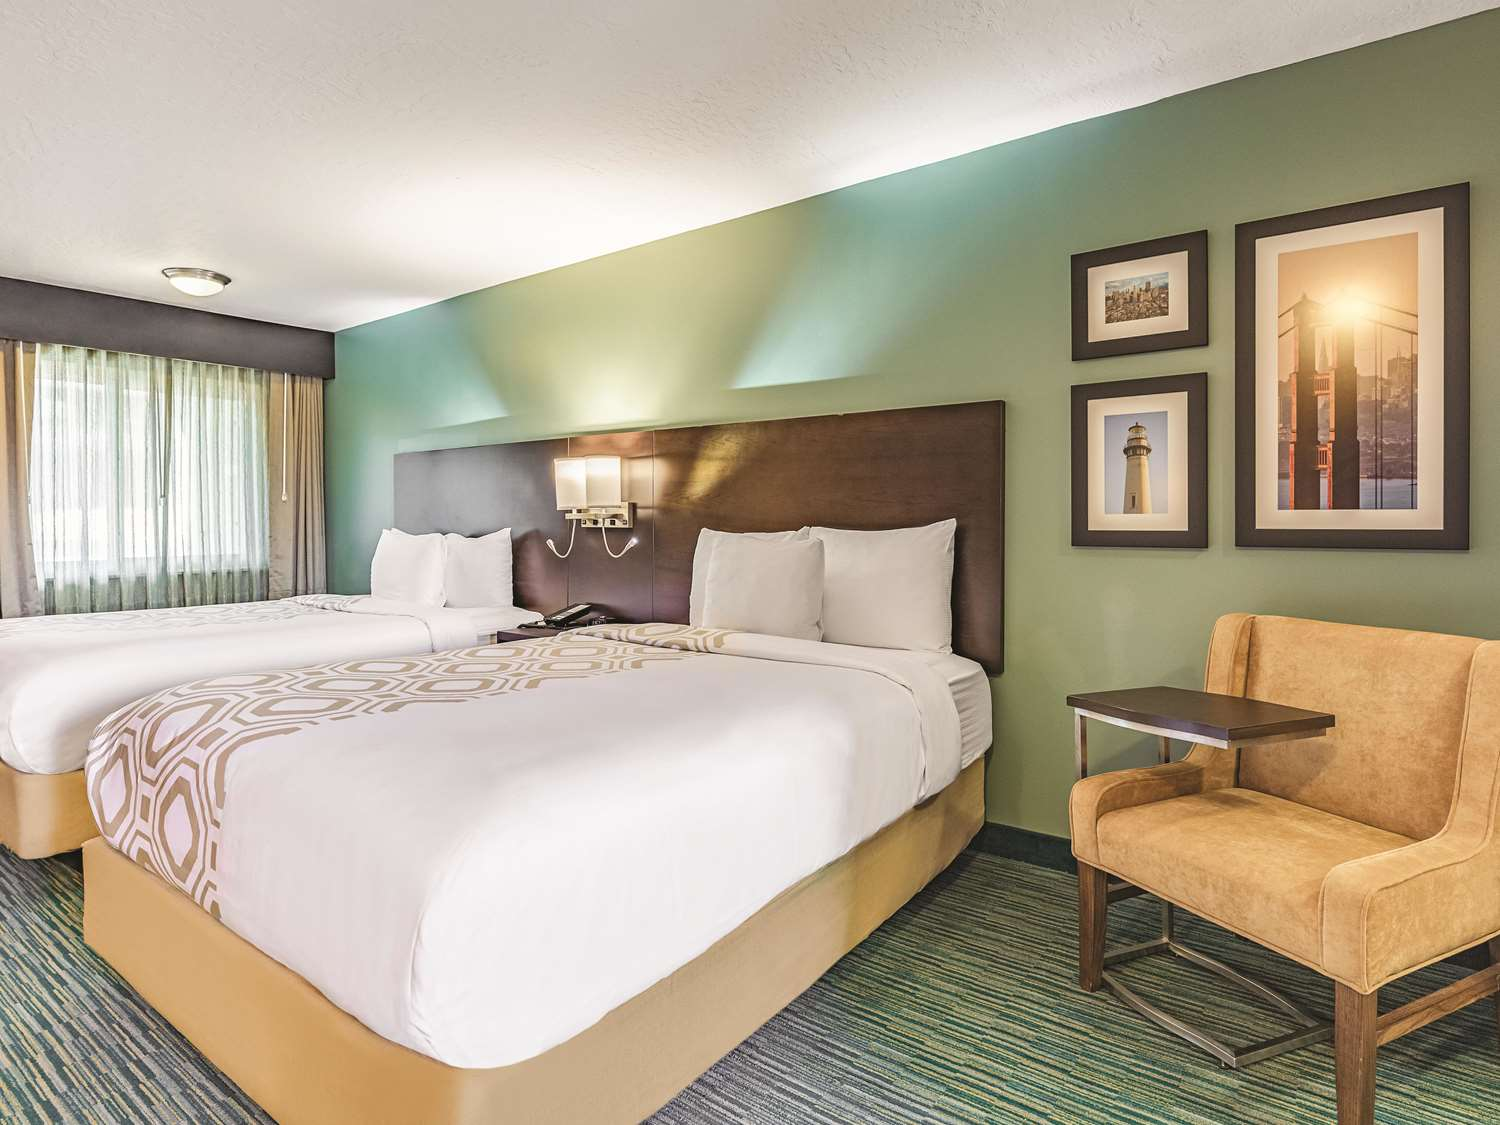 Room - La Quinta Inn & Suites SFO Airport West Millbrae